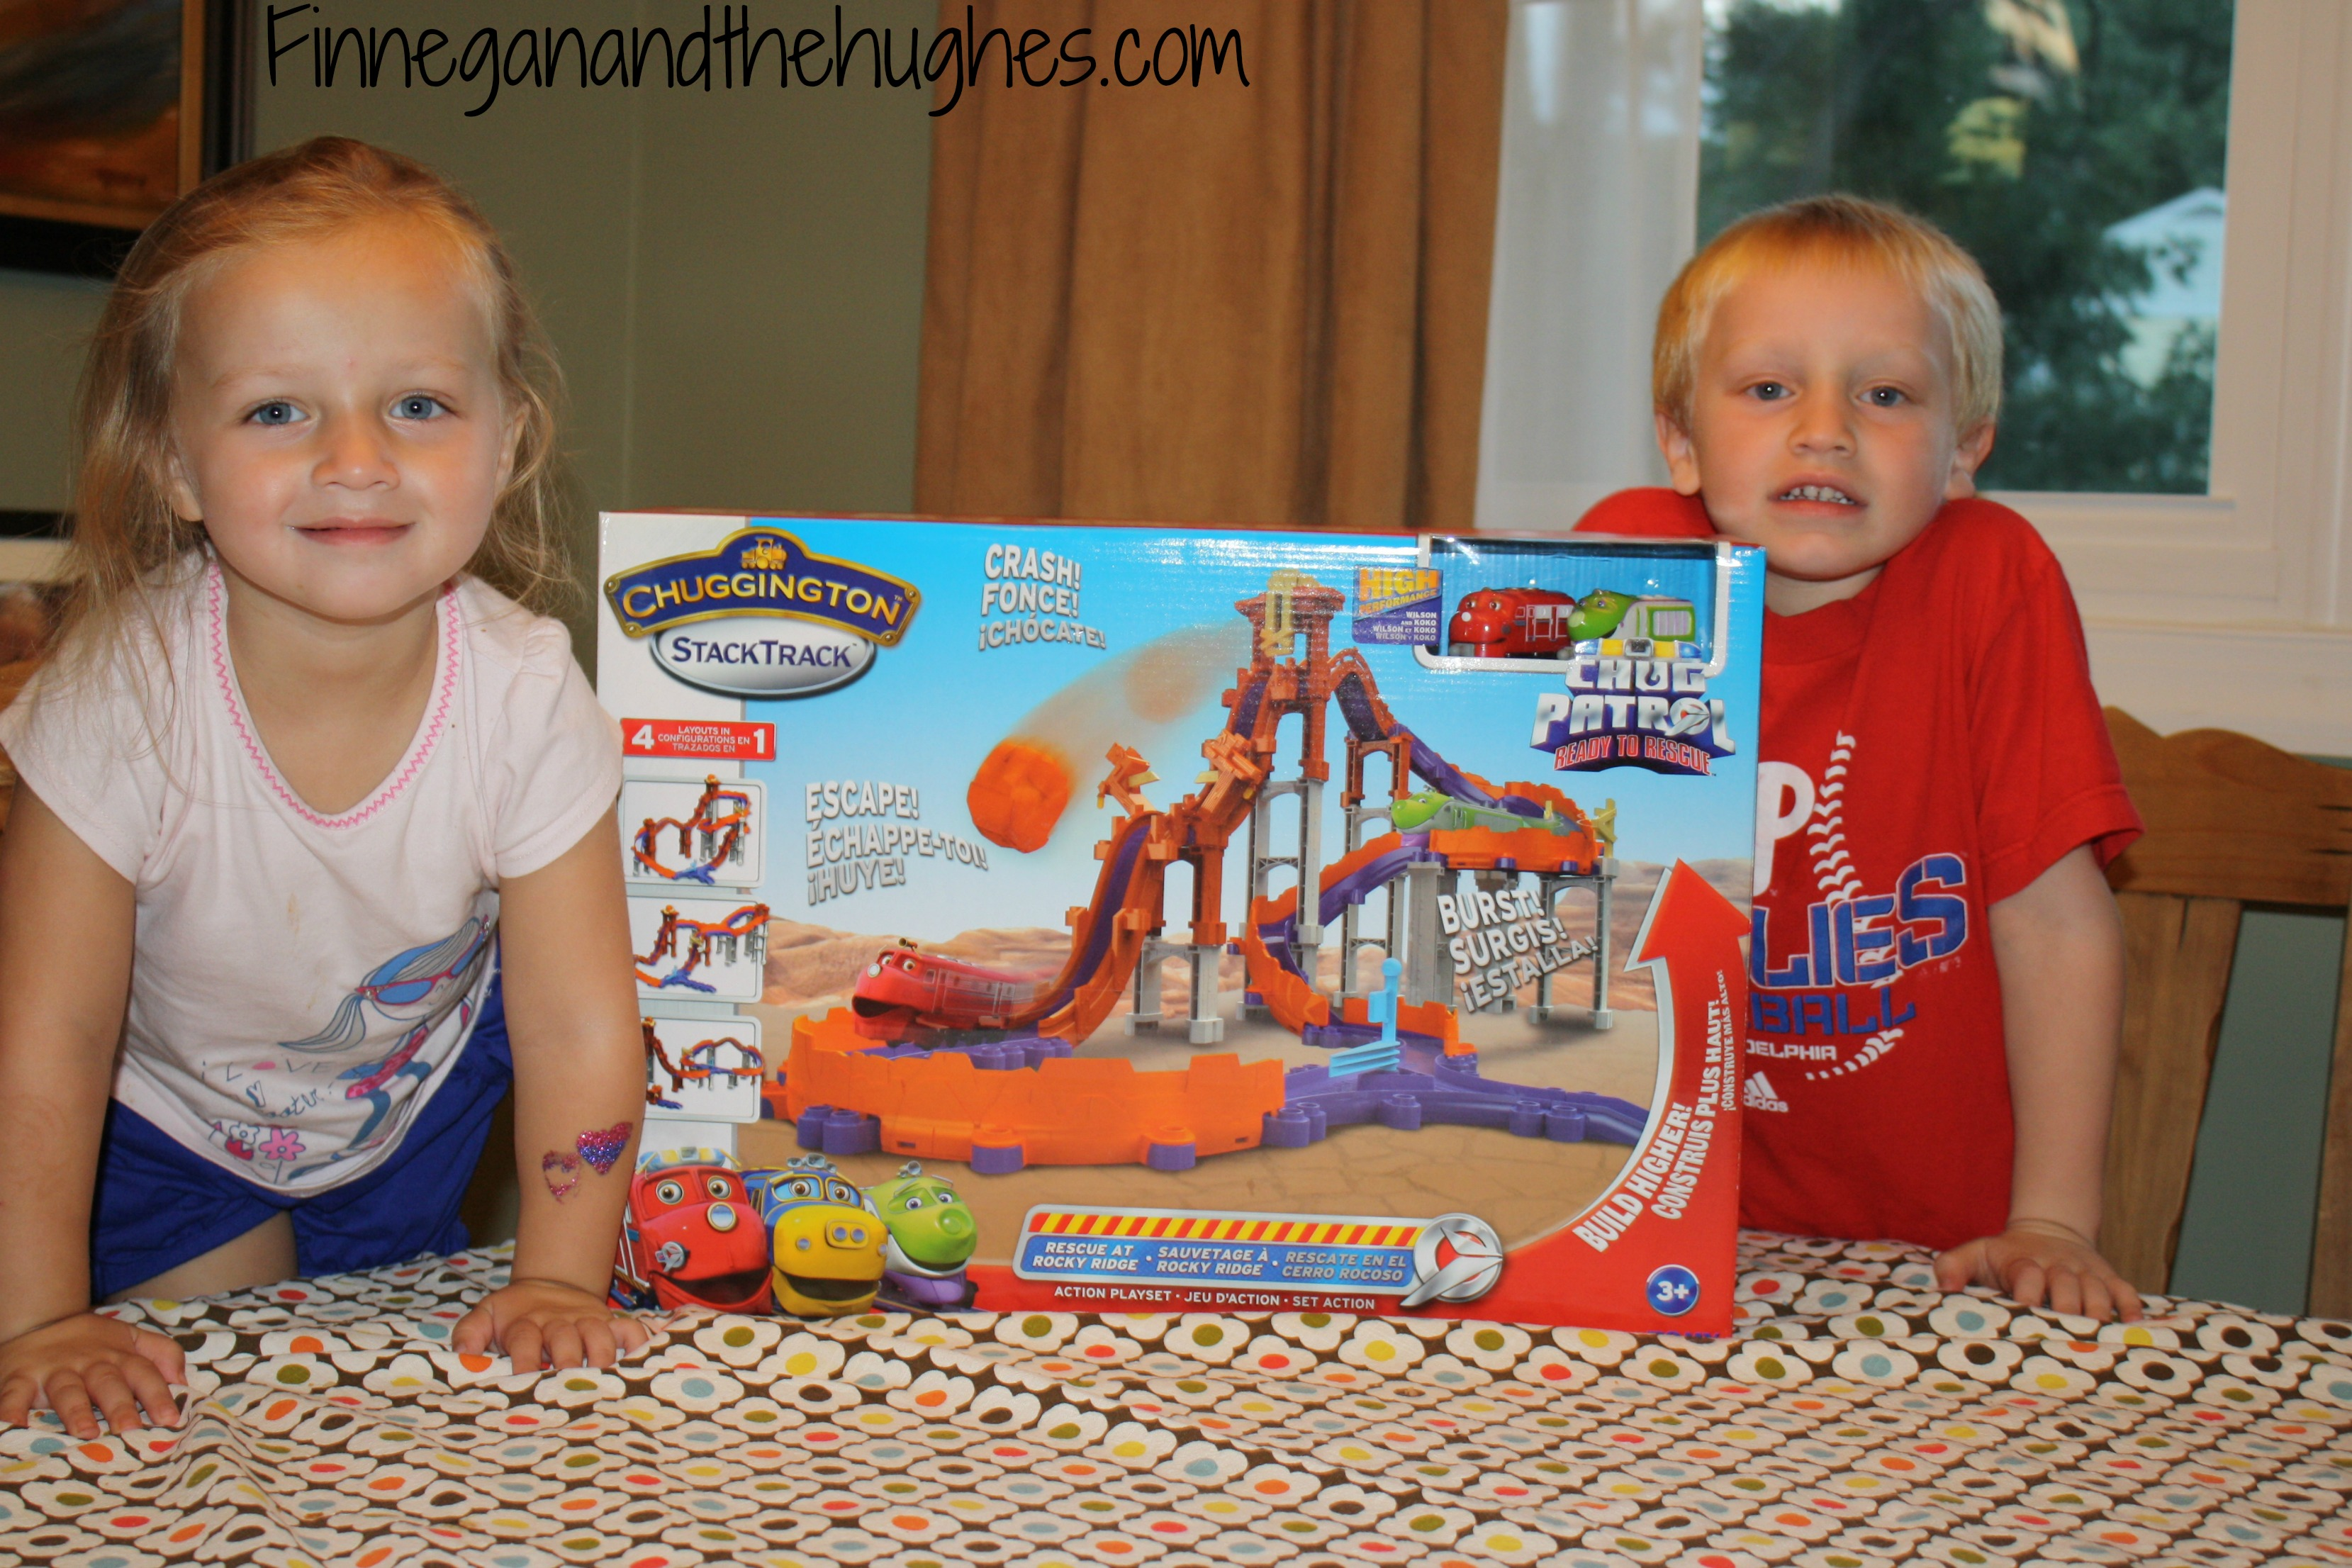 Chuggington Stack Track Playset and Chug Patrol DVD {Review & Giveaway}